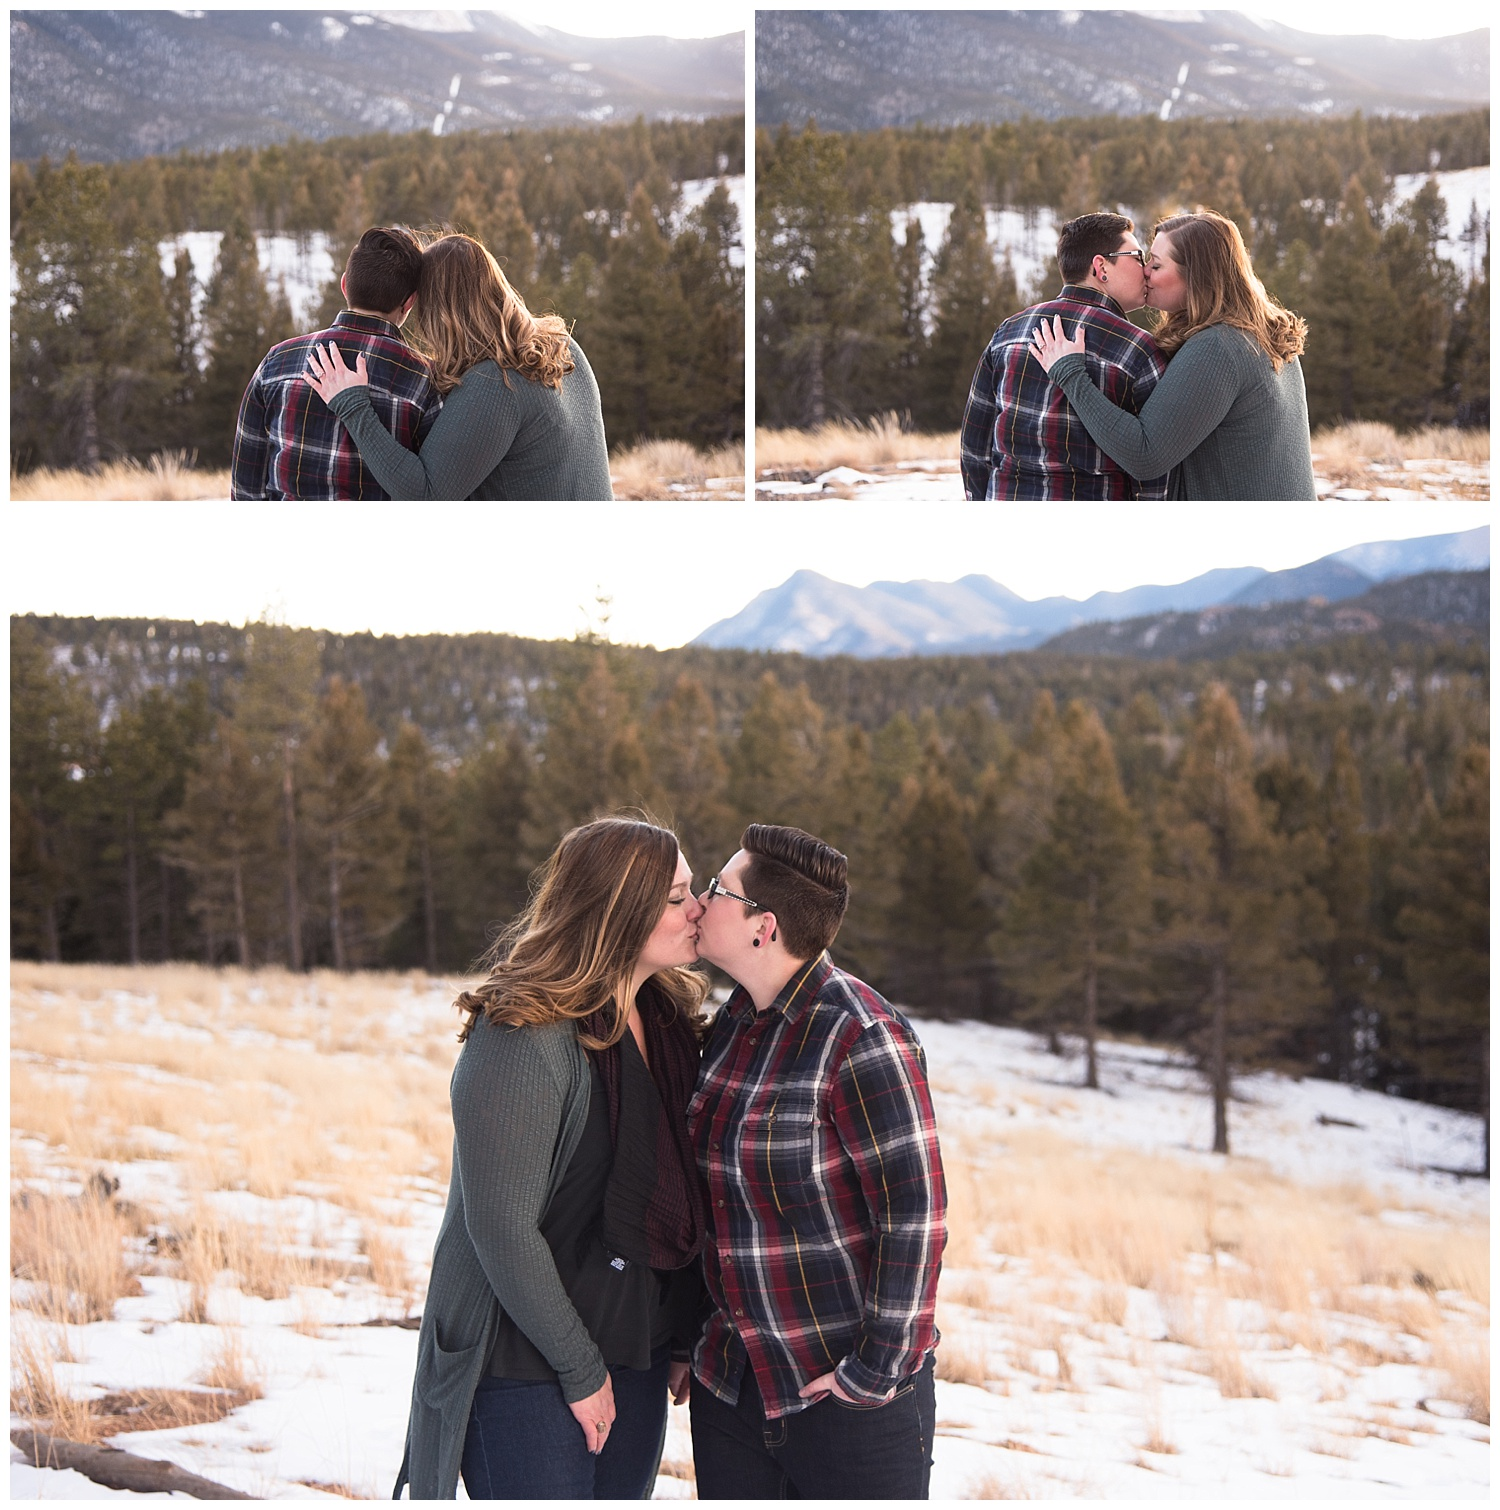 Lesbian Couple Kissing | Jenny and Tara's Epic Mountain Engagement Session | Pikes Peak, Colorado Photography | Farm Wedding Photographer | Apollo Fields Wedding Photojournalism